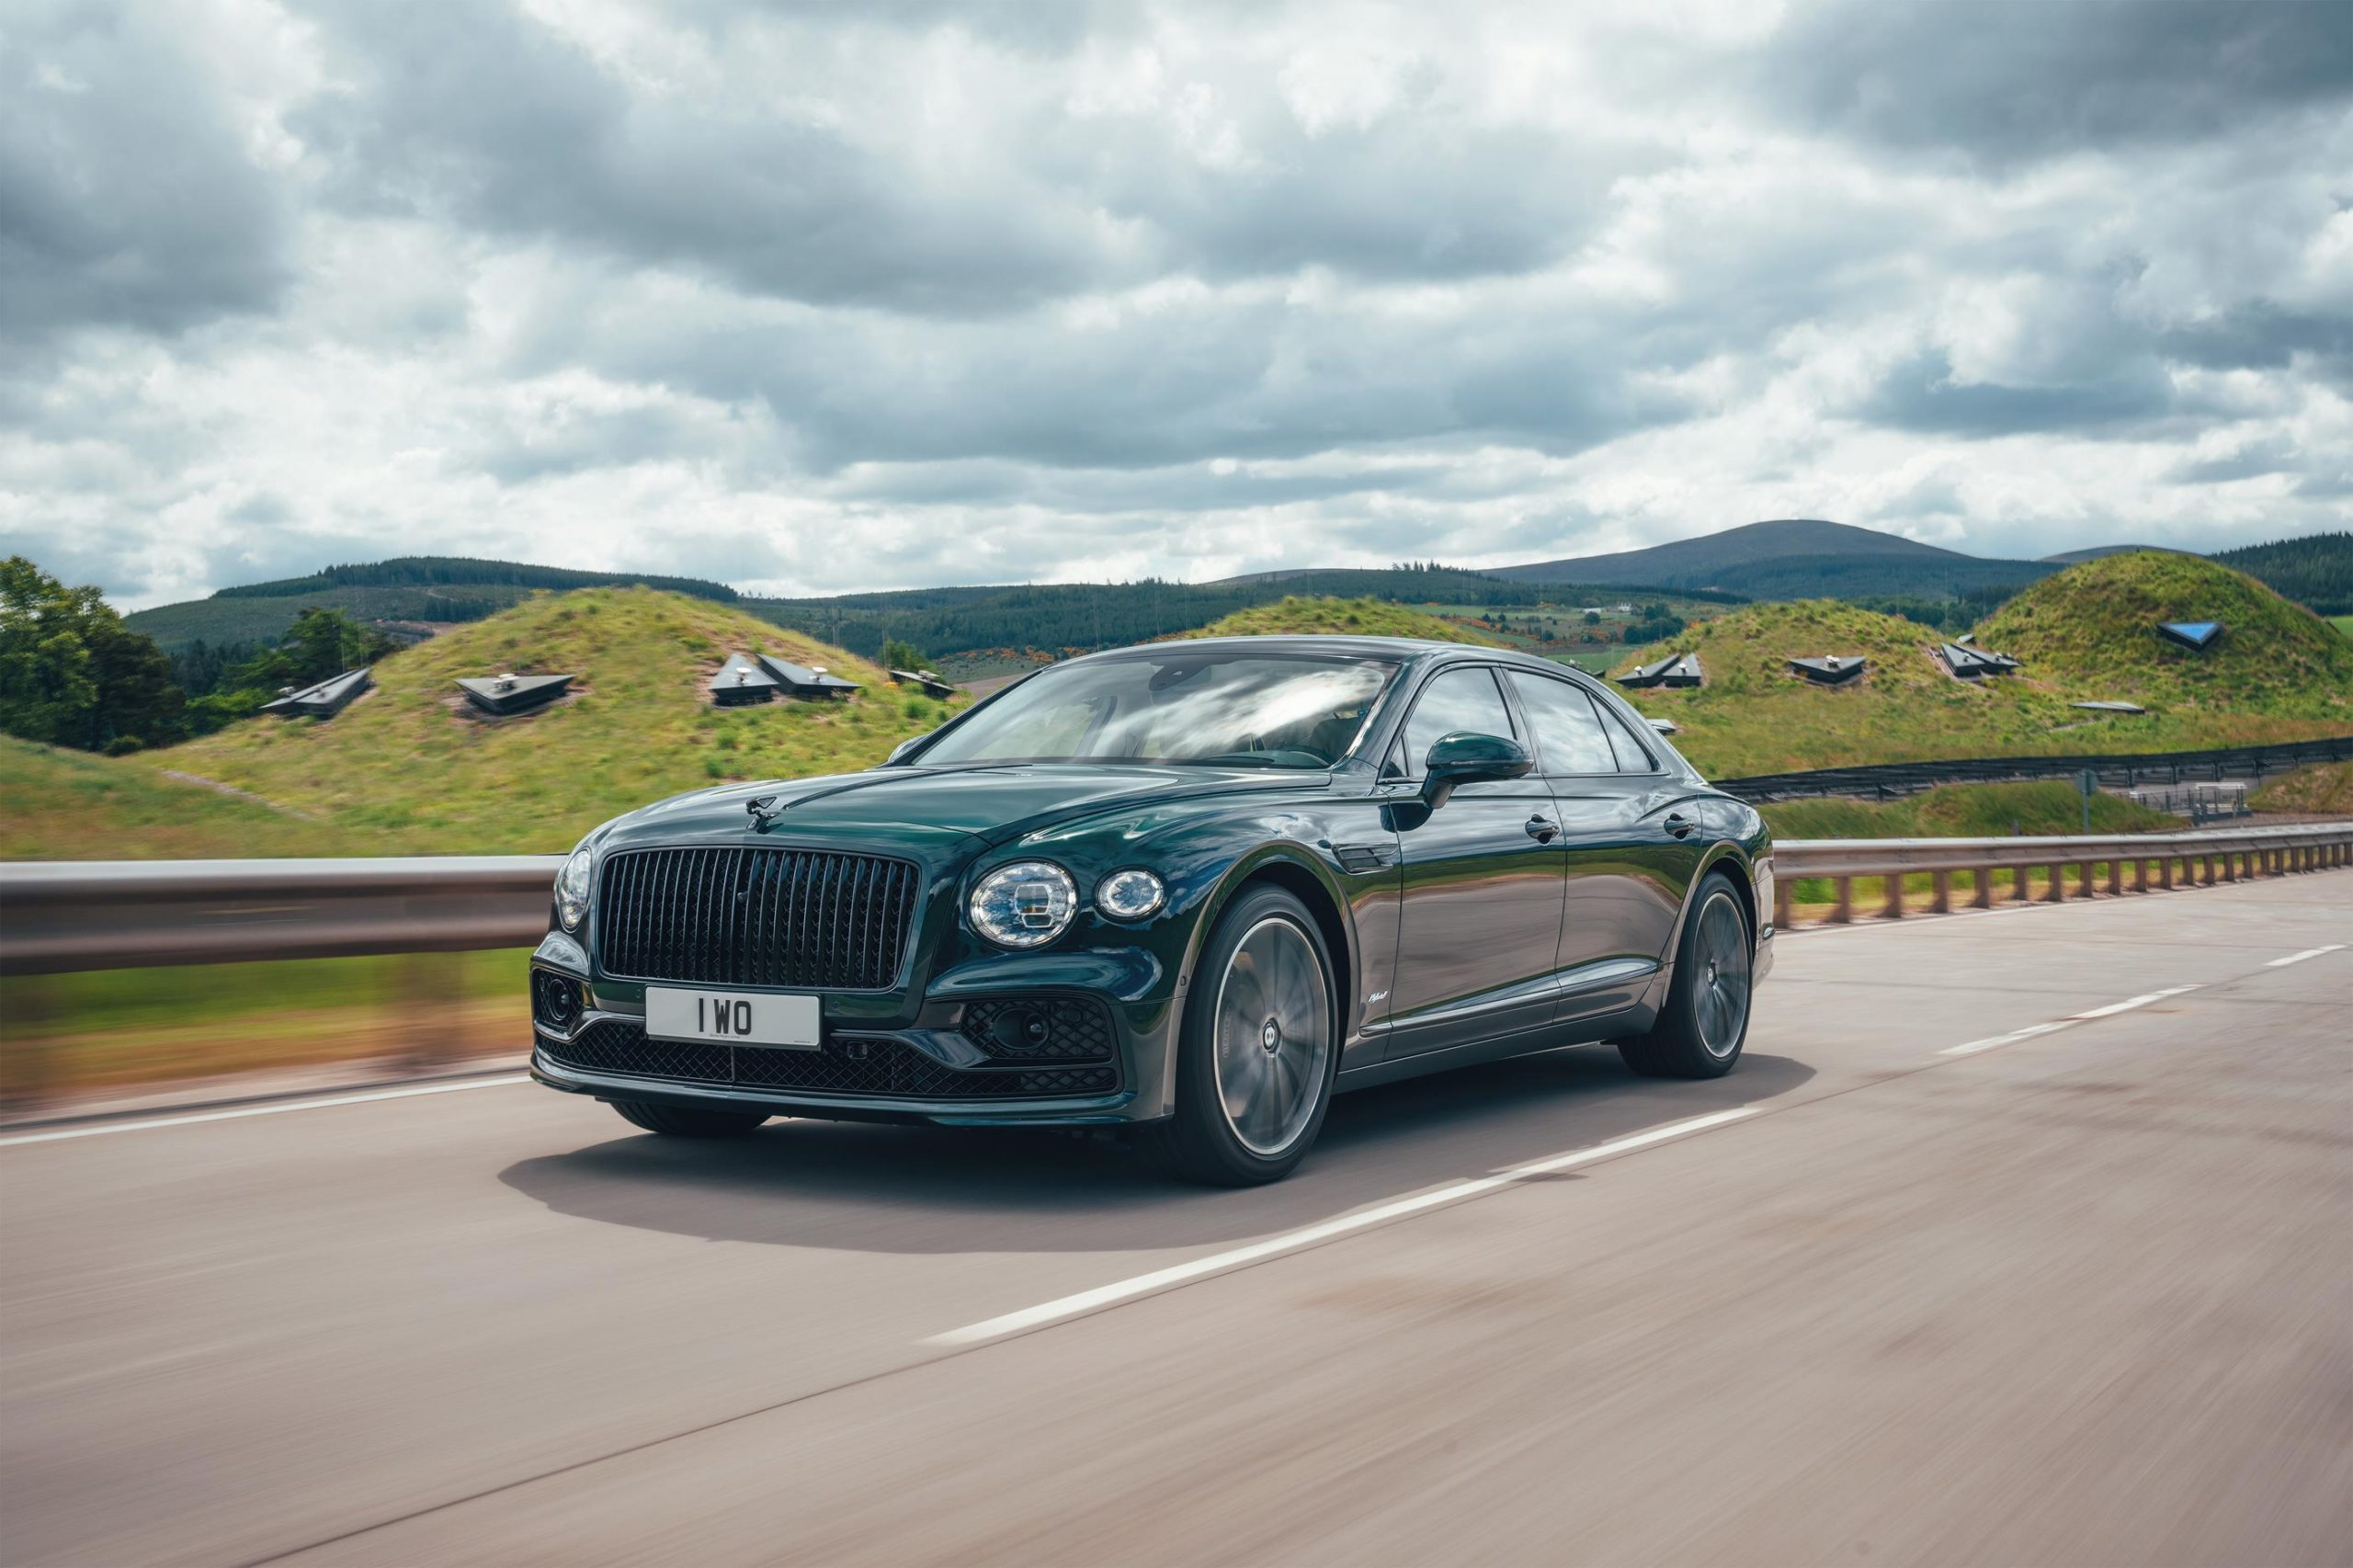 full specifications and price of 2022 Bentley Flying Spur Hybrid in Nigeria